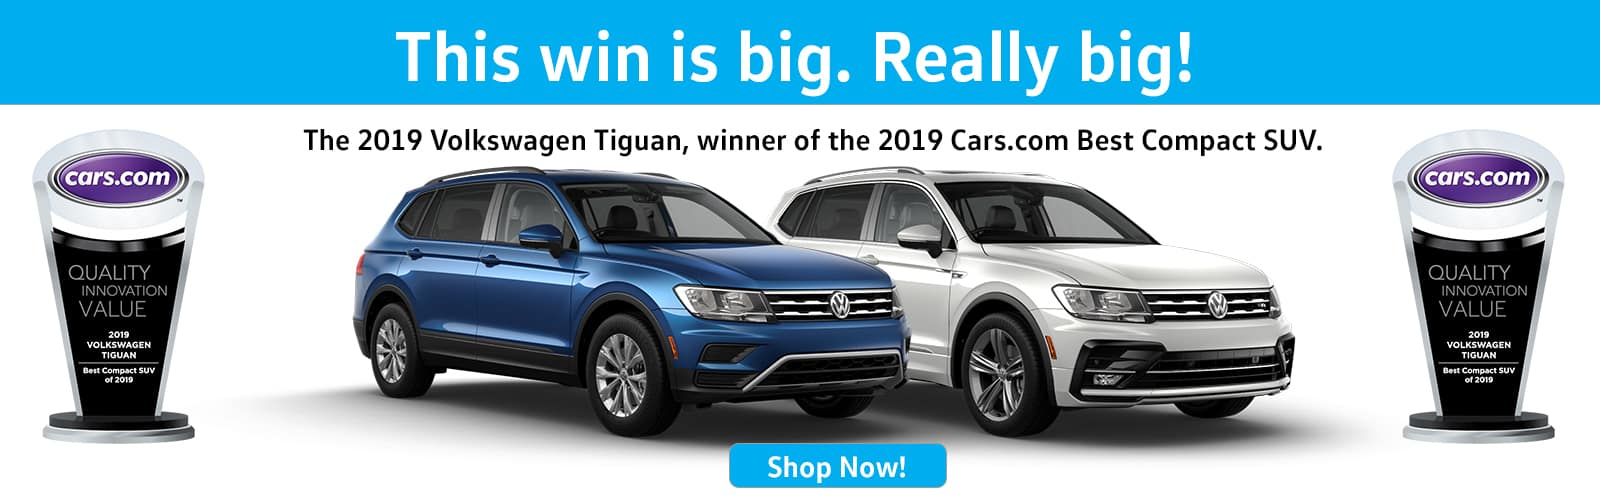 2019 Tiguan Wins Cars.com Best Compact SUV